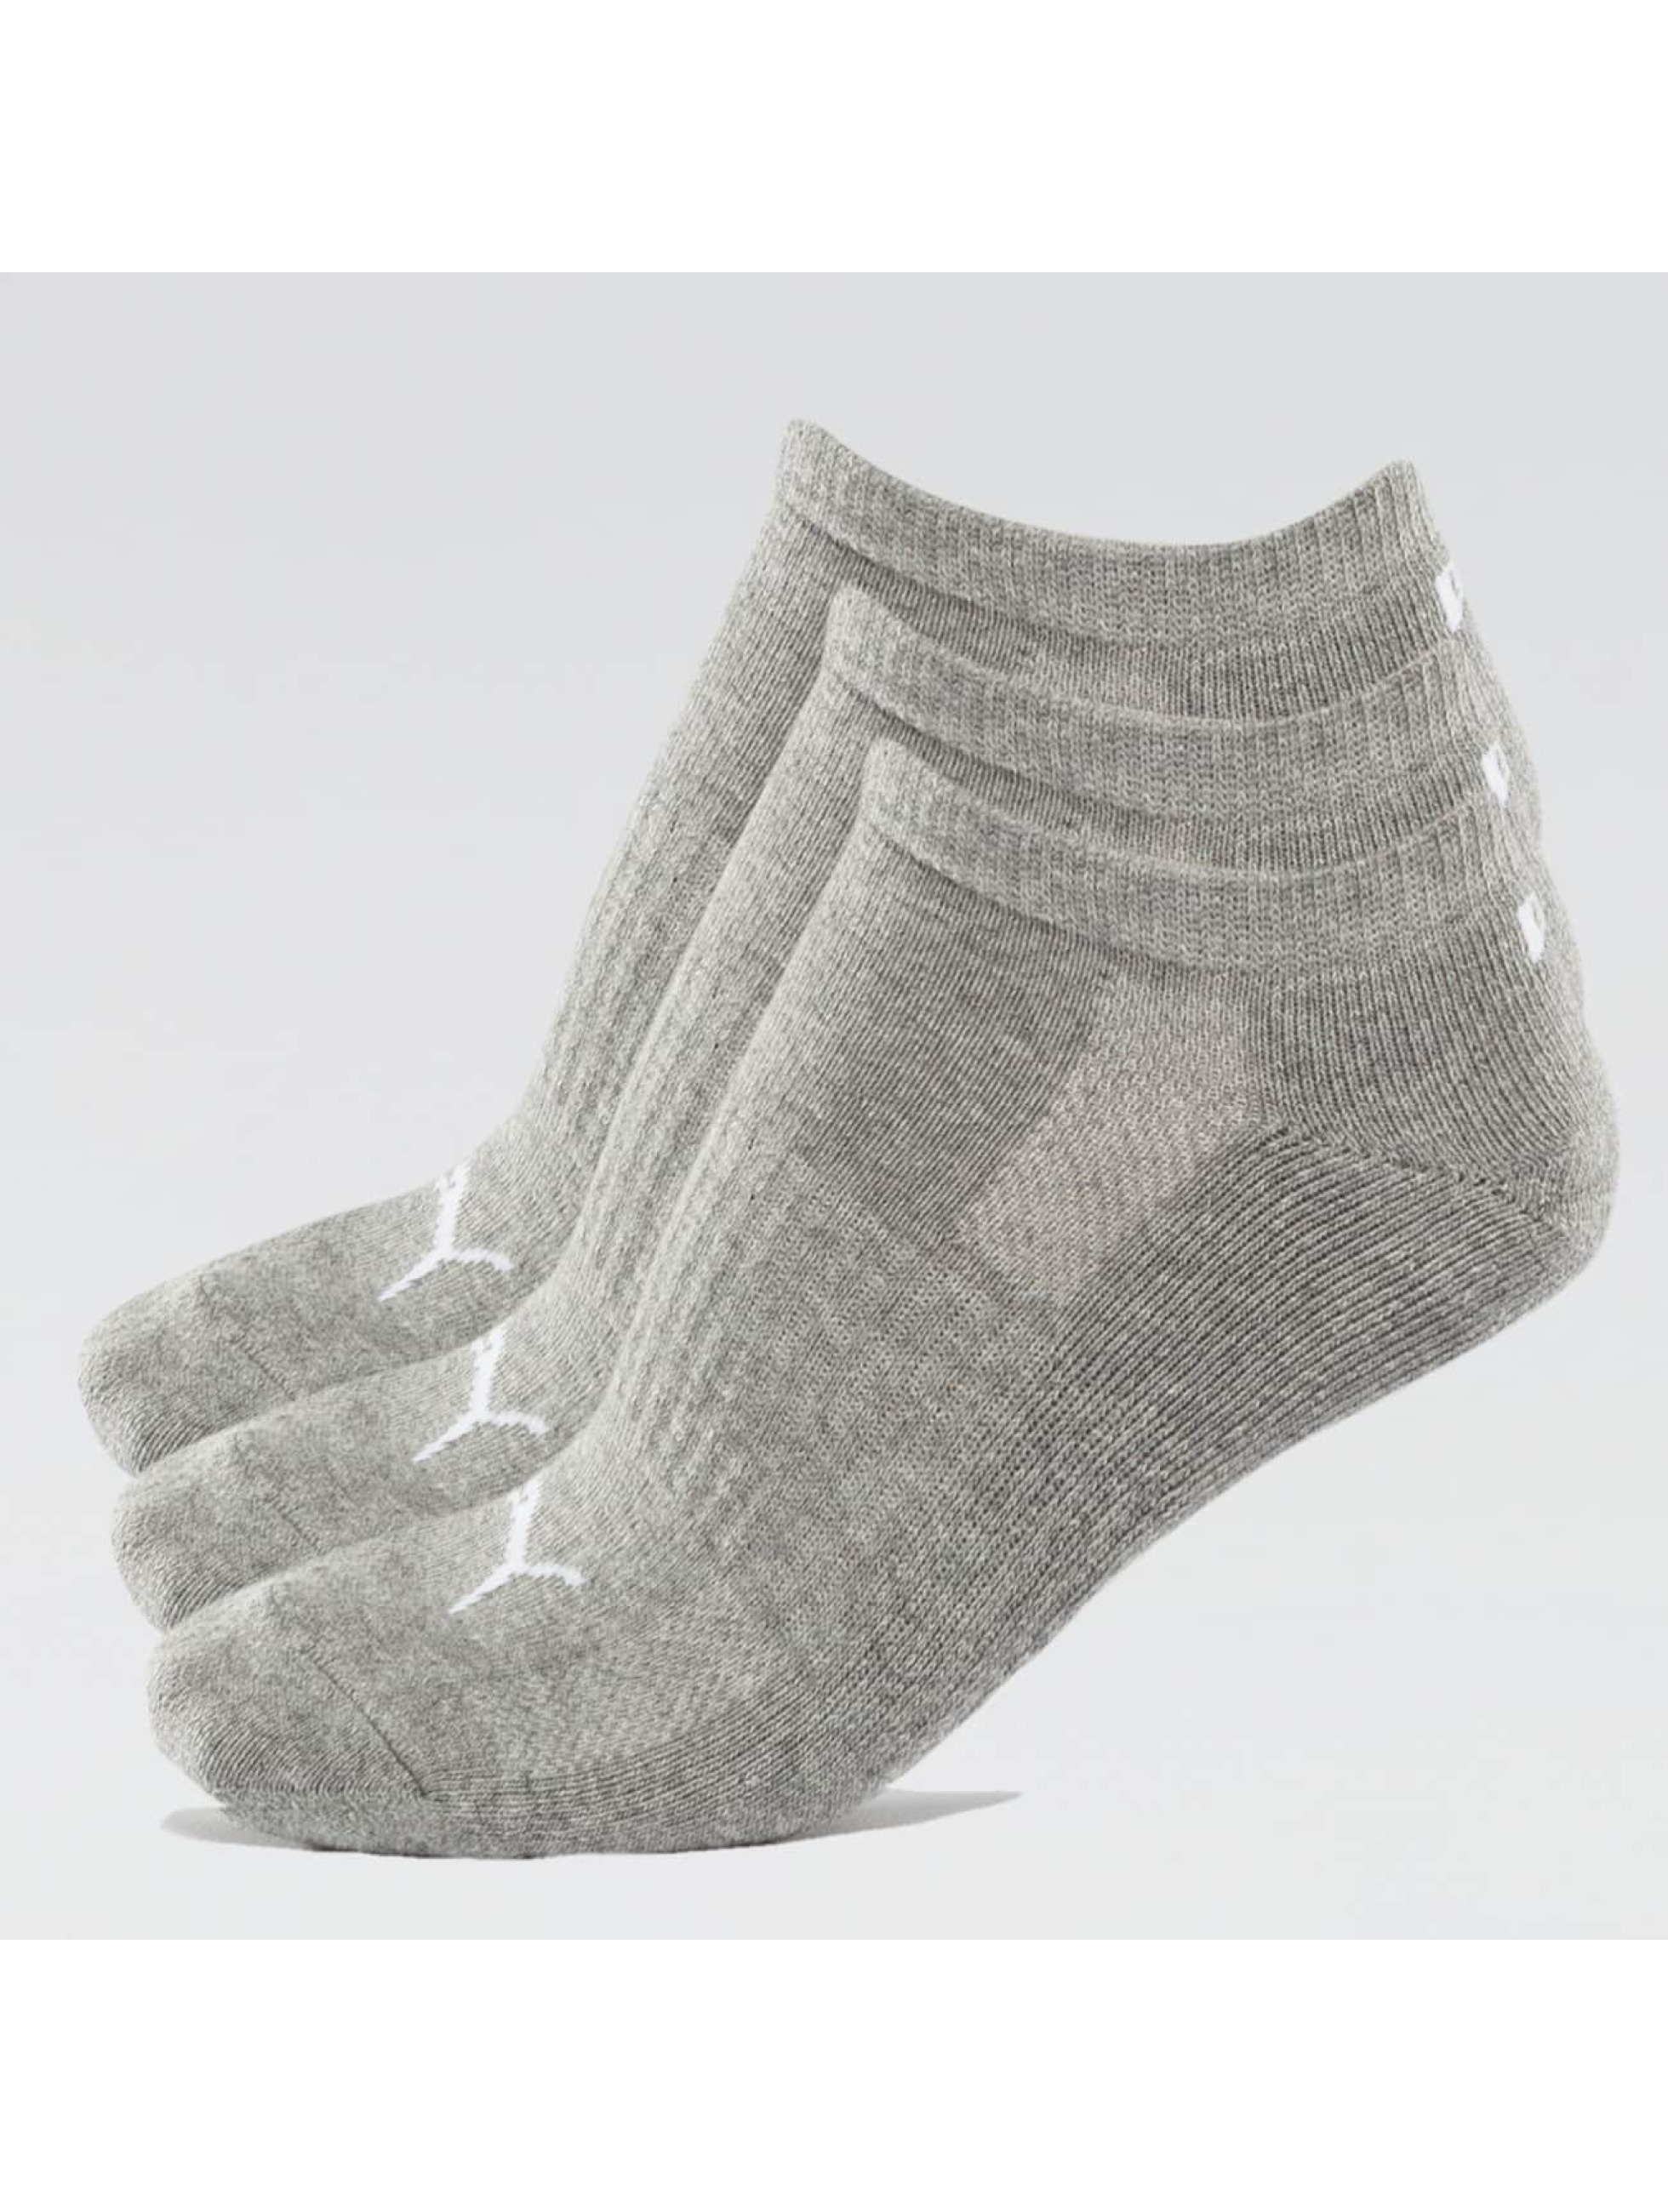 Puma Männer,Frauen Socken 2-Pack Cushioned Sneakers in grau